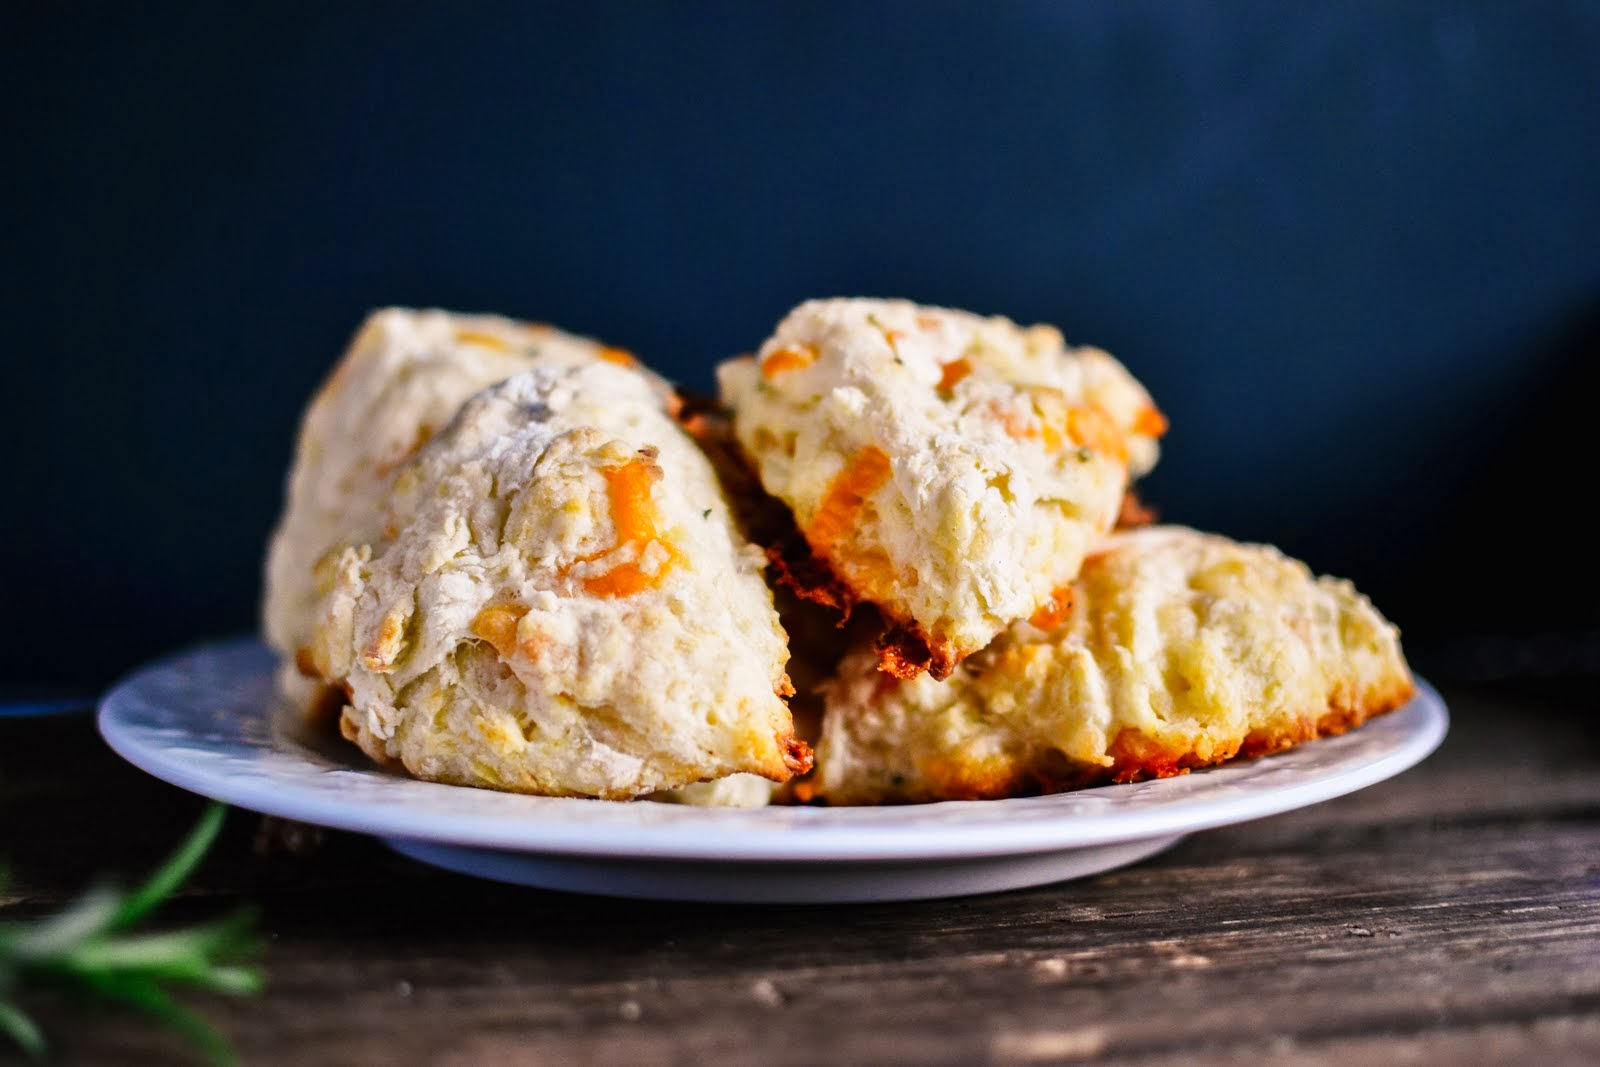 squash+soup+and+cheddar+biscuits-42.jpg